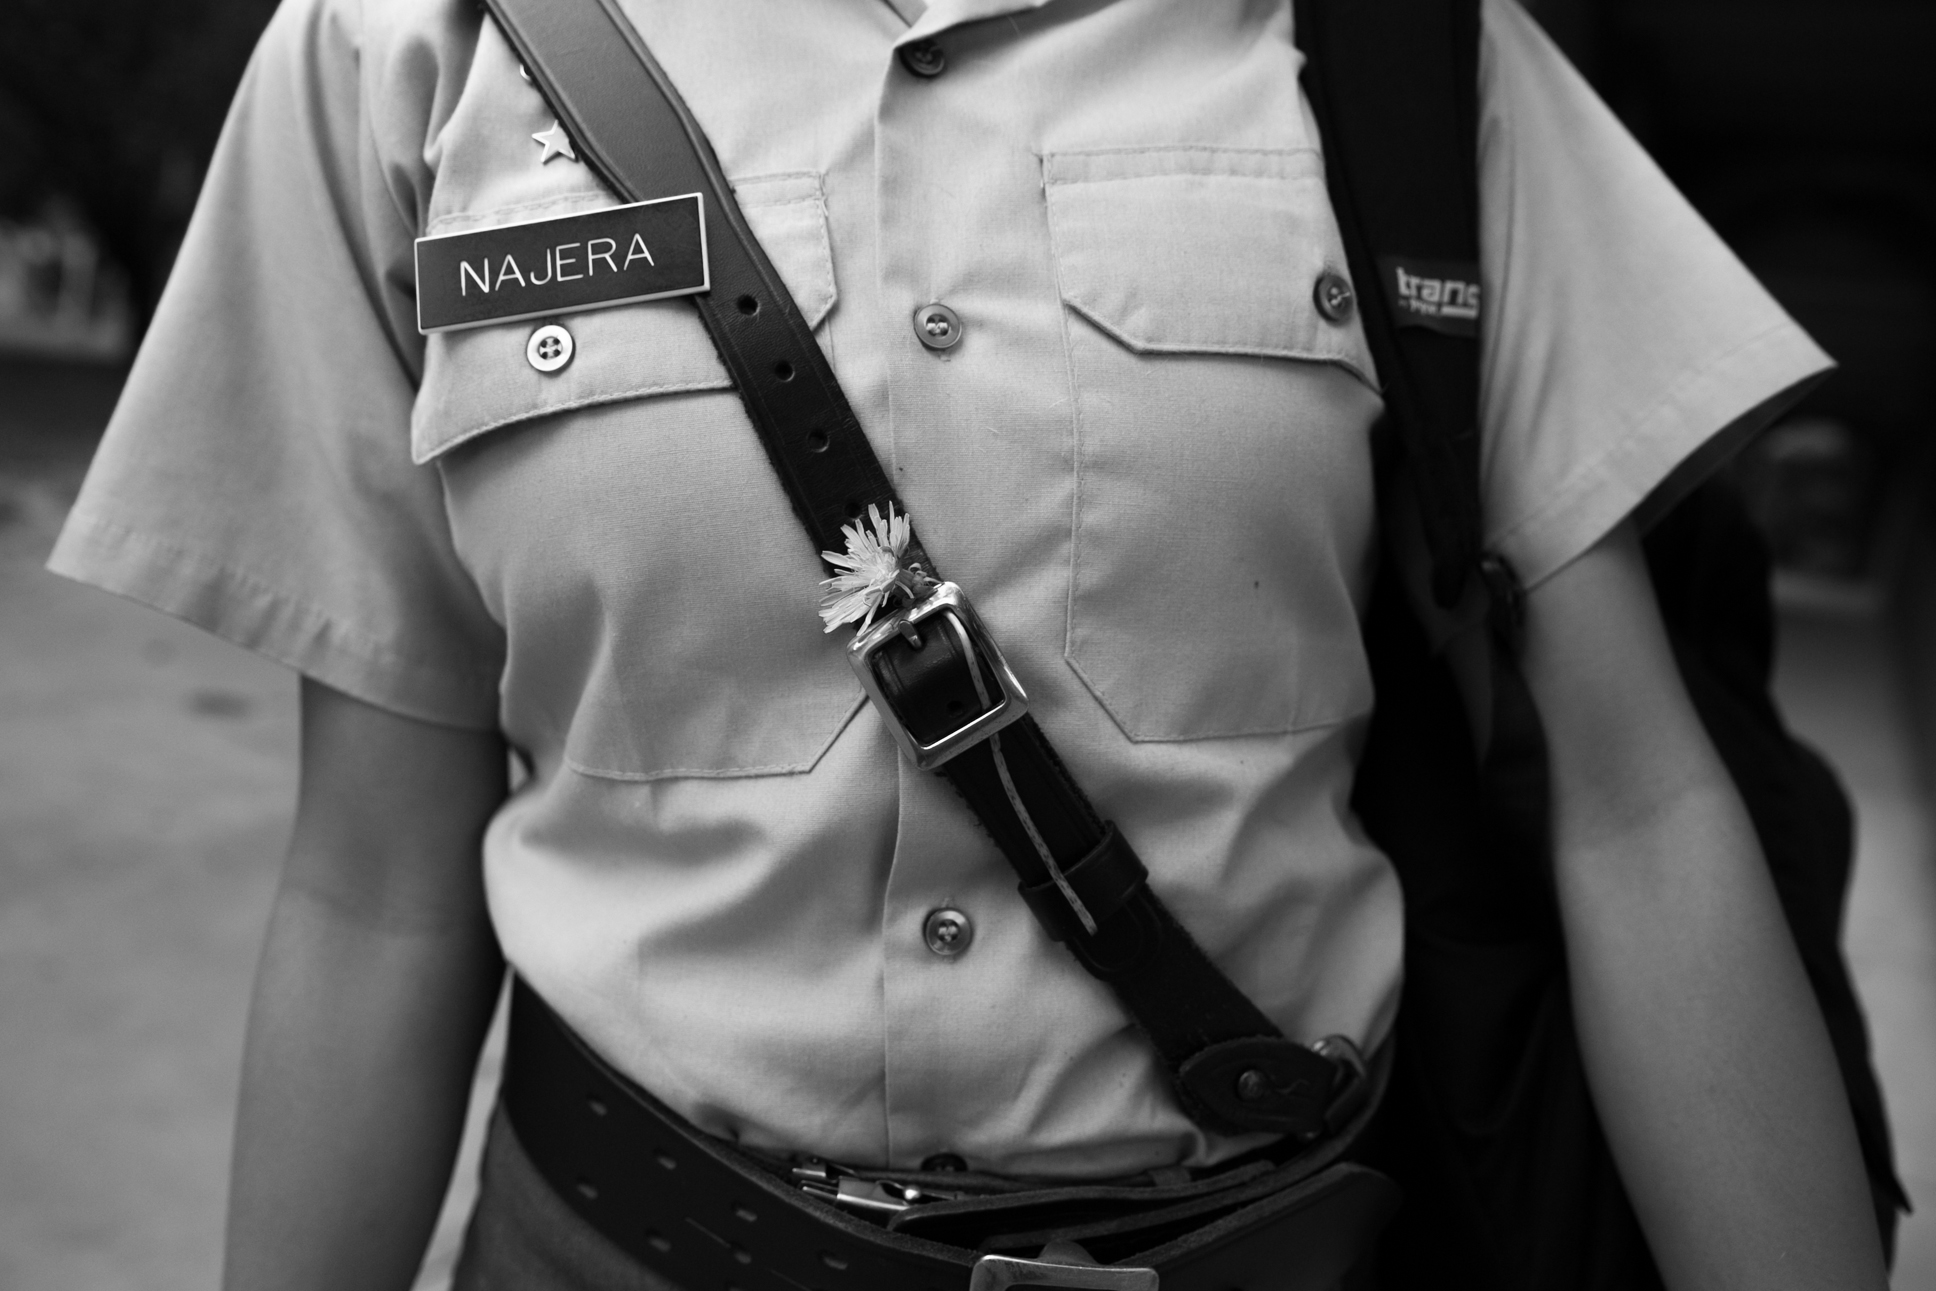 2nd lt. Najera sticks a flower in her uniform. As the female cadets are subject to the same dress regulations as the male cadets, they must express their femininity in other ways.